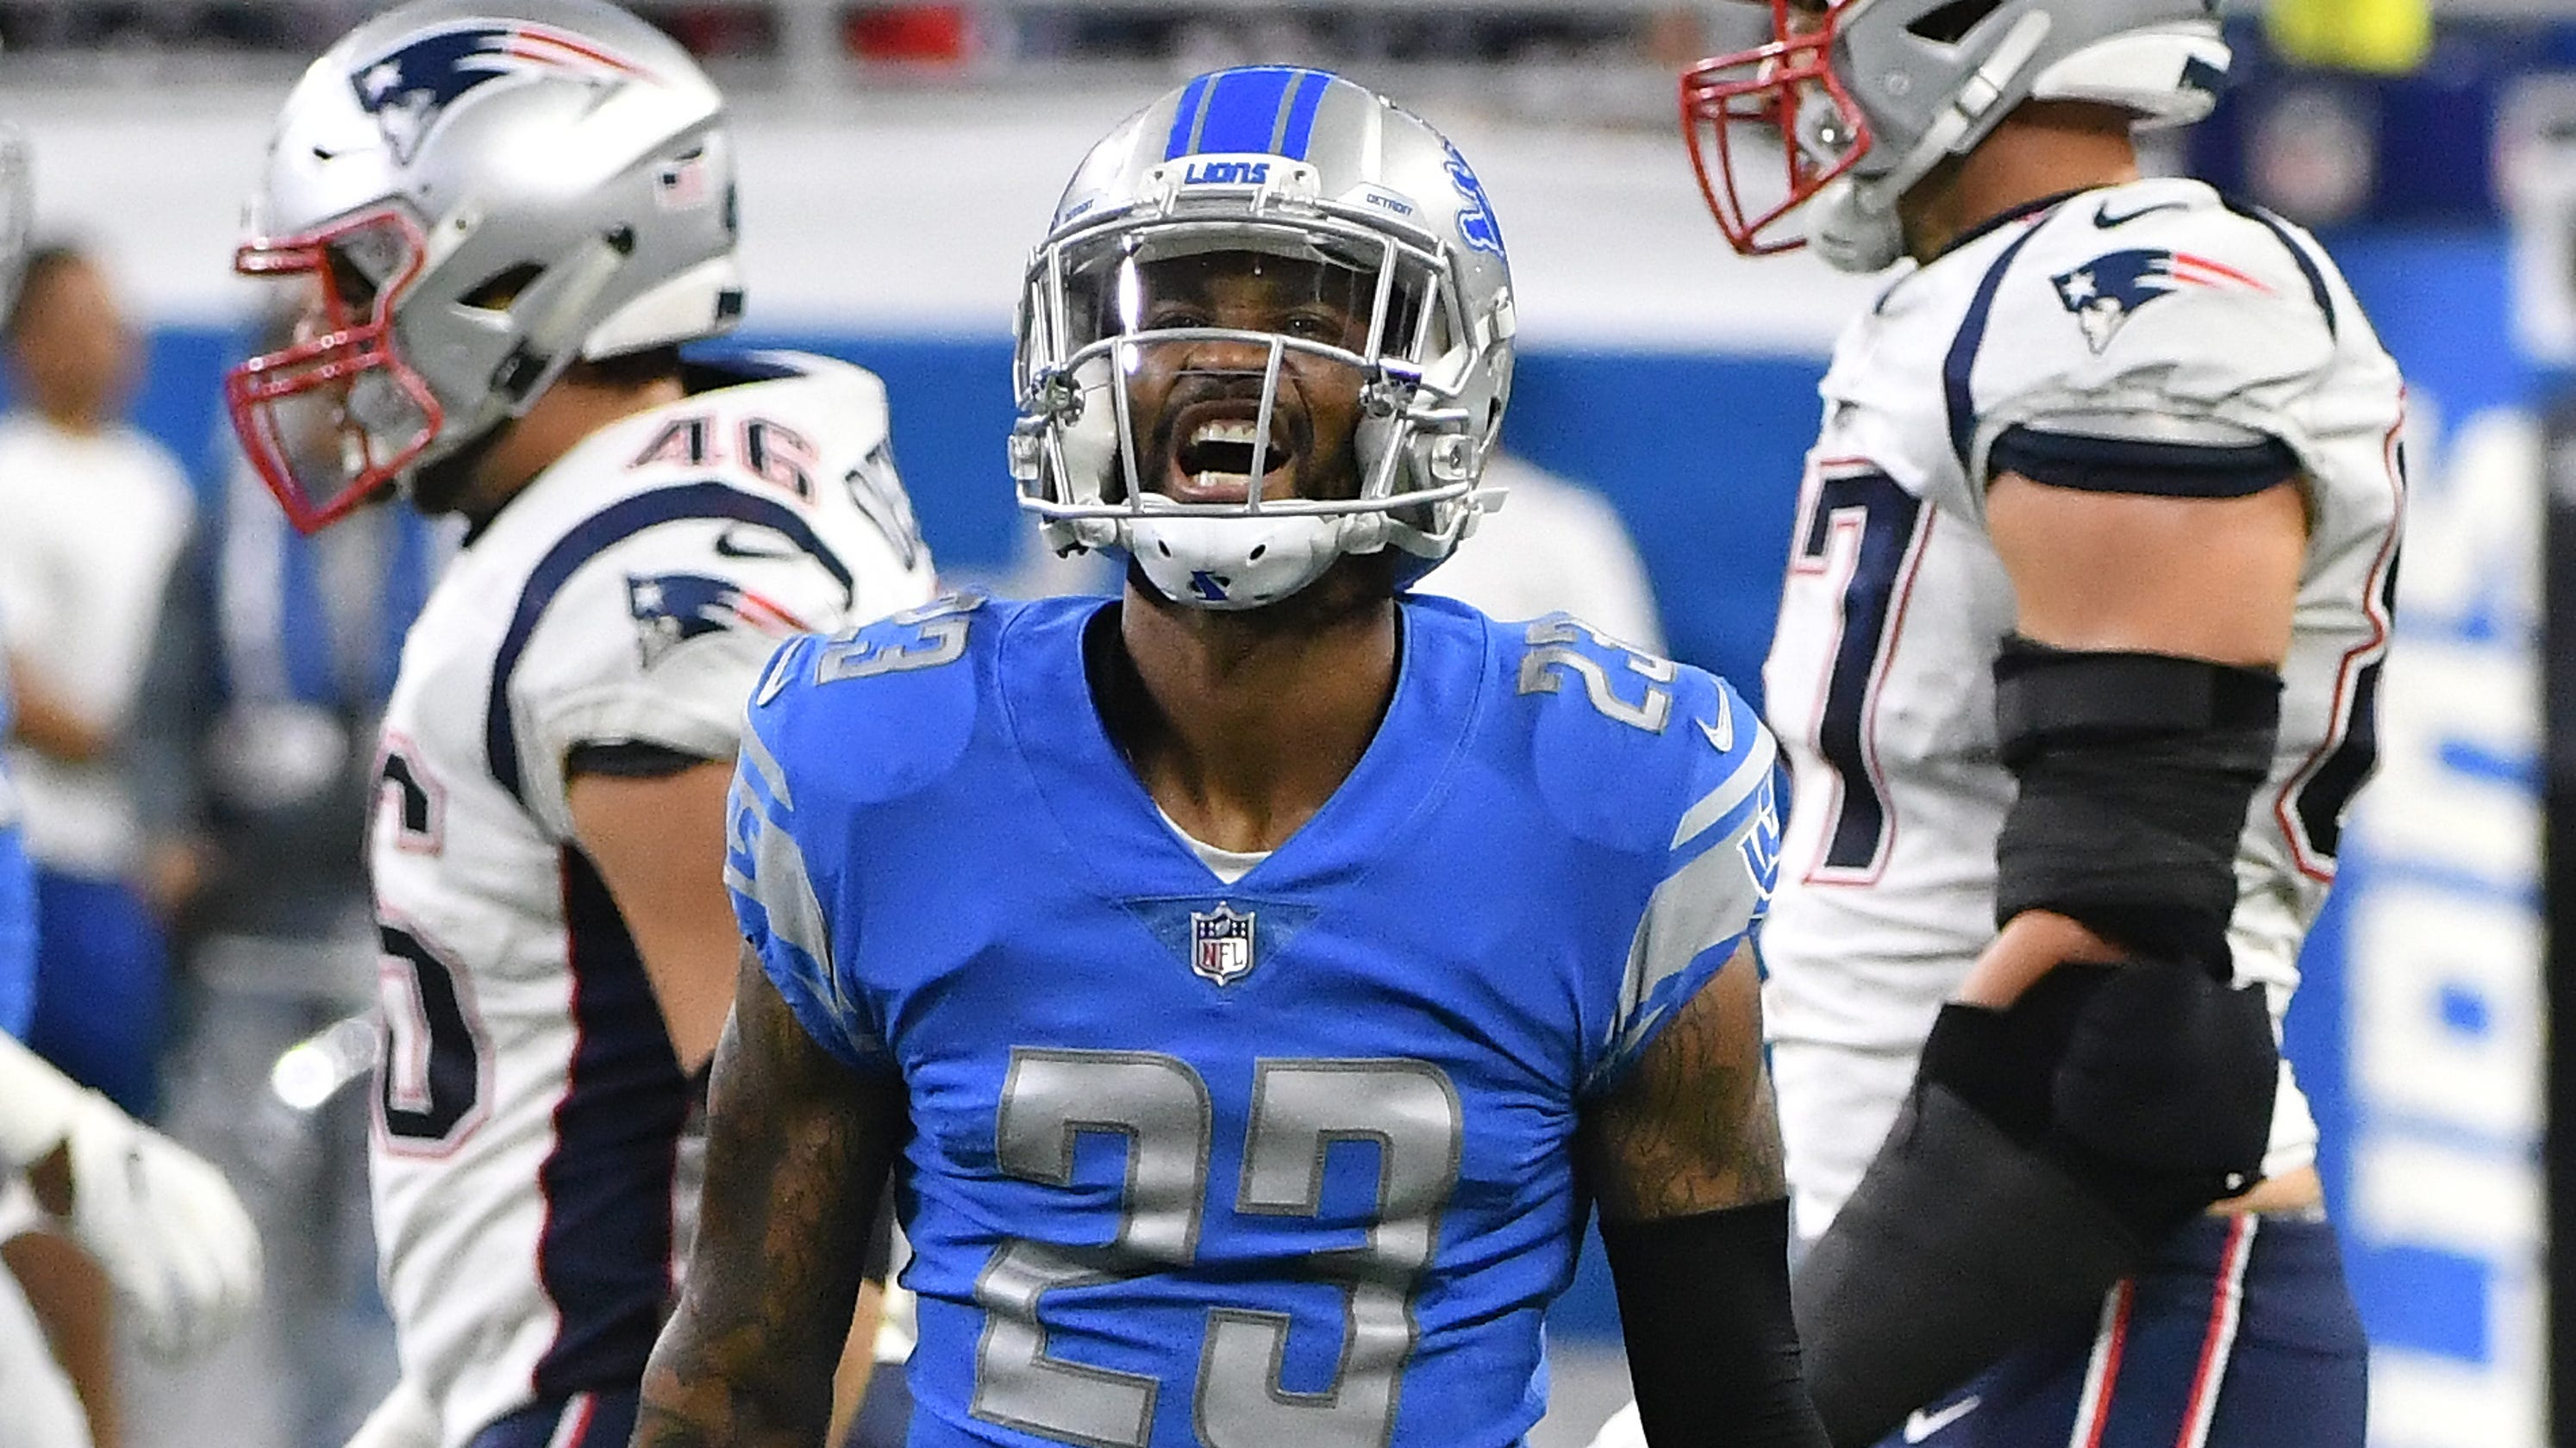 promo code 27329 c1283 Lions' Slay named to Pro Bowl, Diggs an alternate